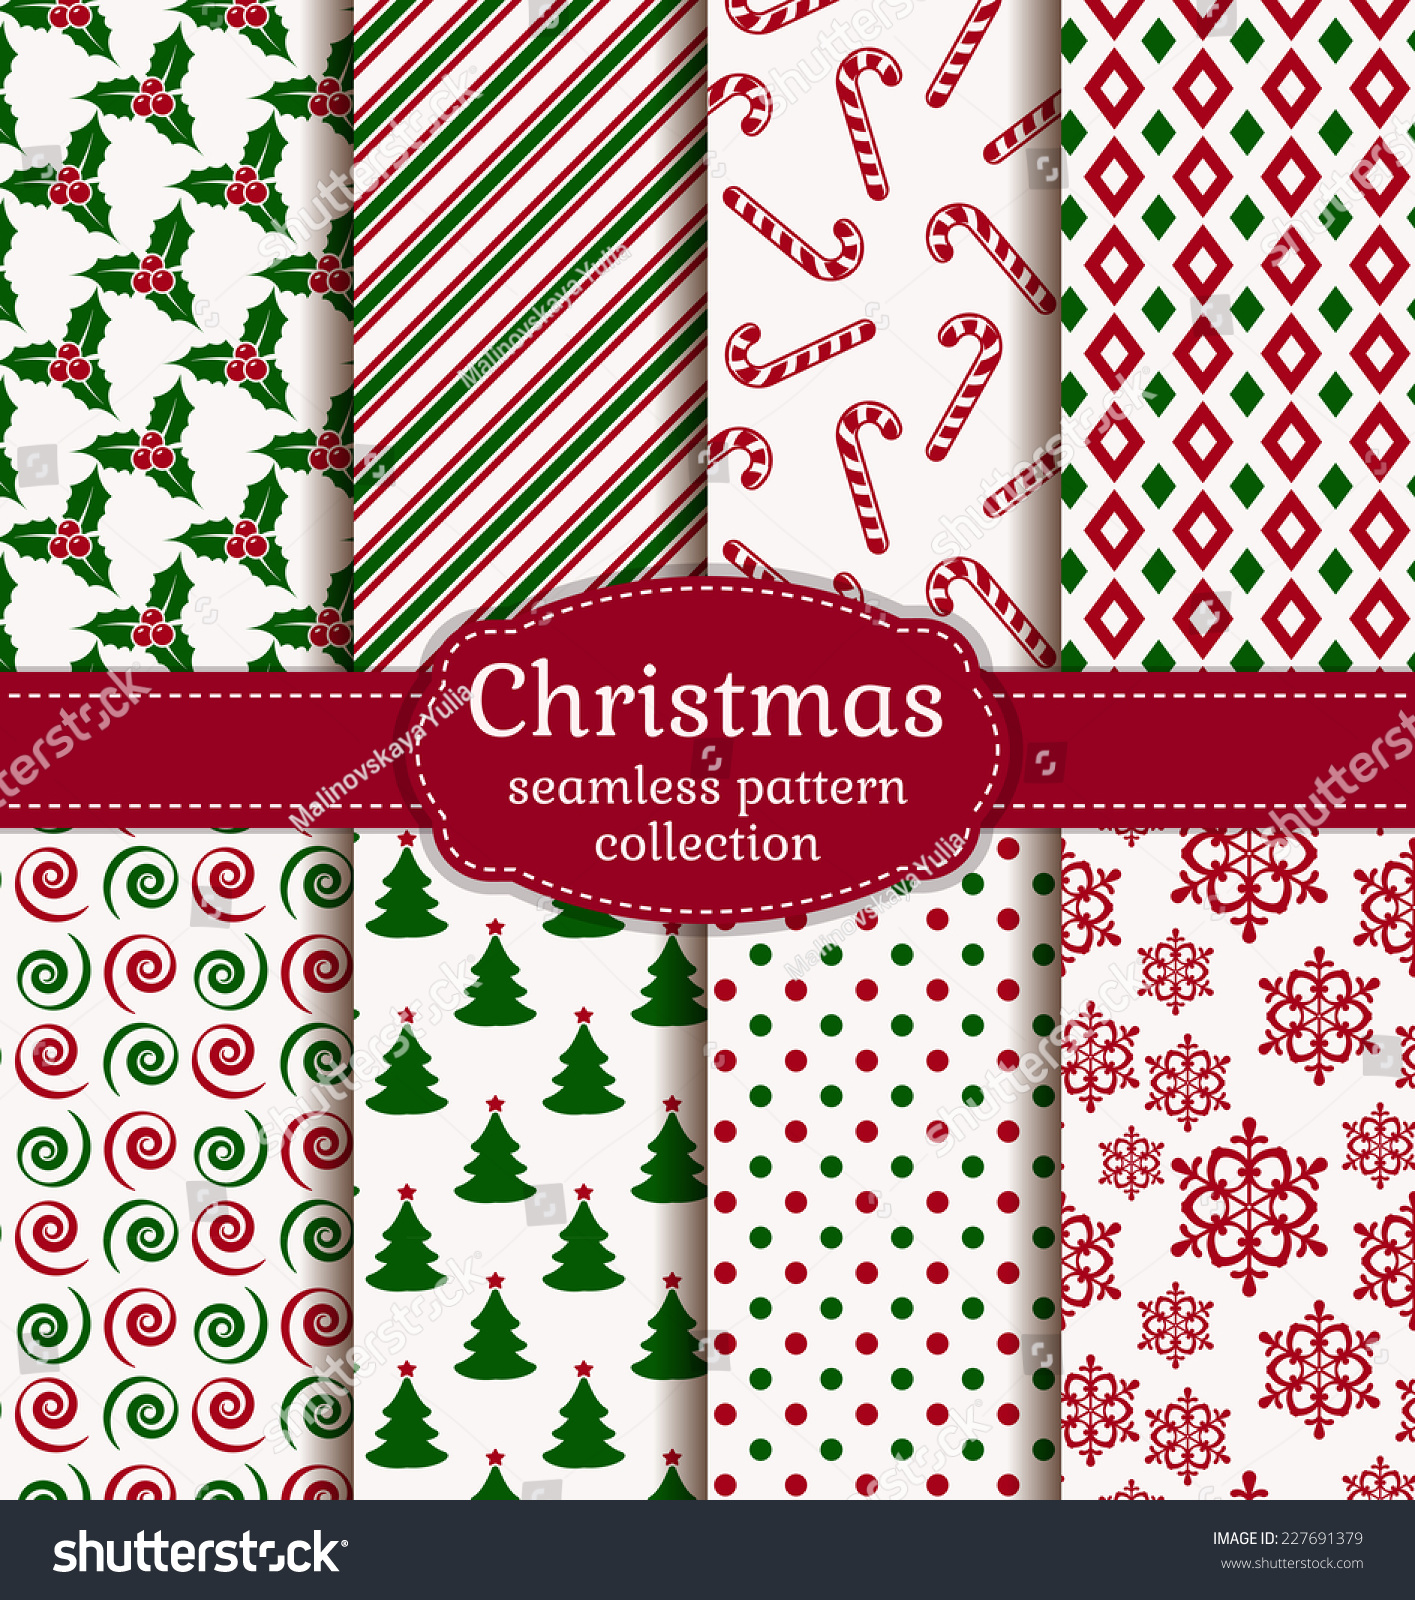 Pics photos merry christmas argyle twitter backgrounds - Merry Christmas And Happy New Year Set Of Holiday Backgrounds Collection Of Seamless Patterns